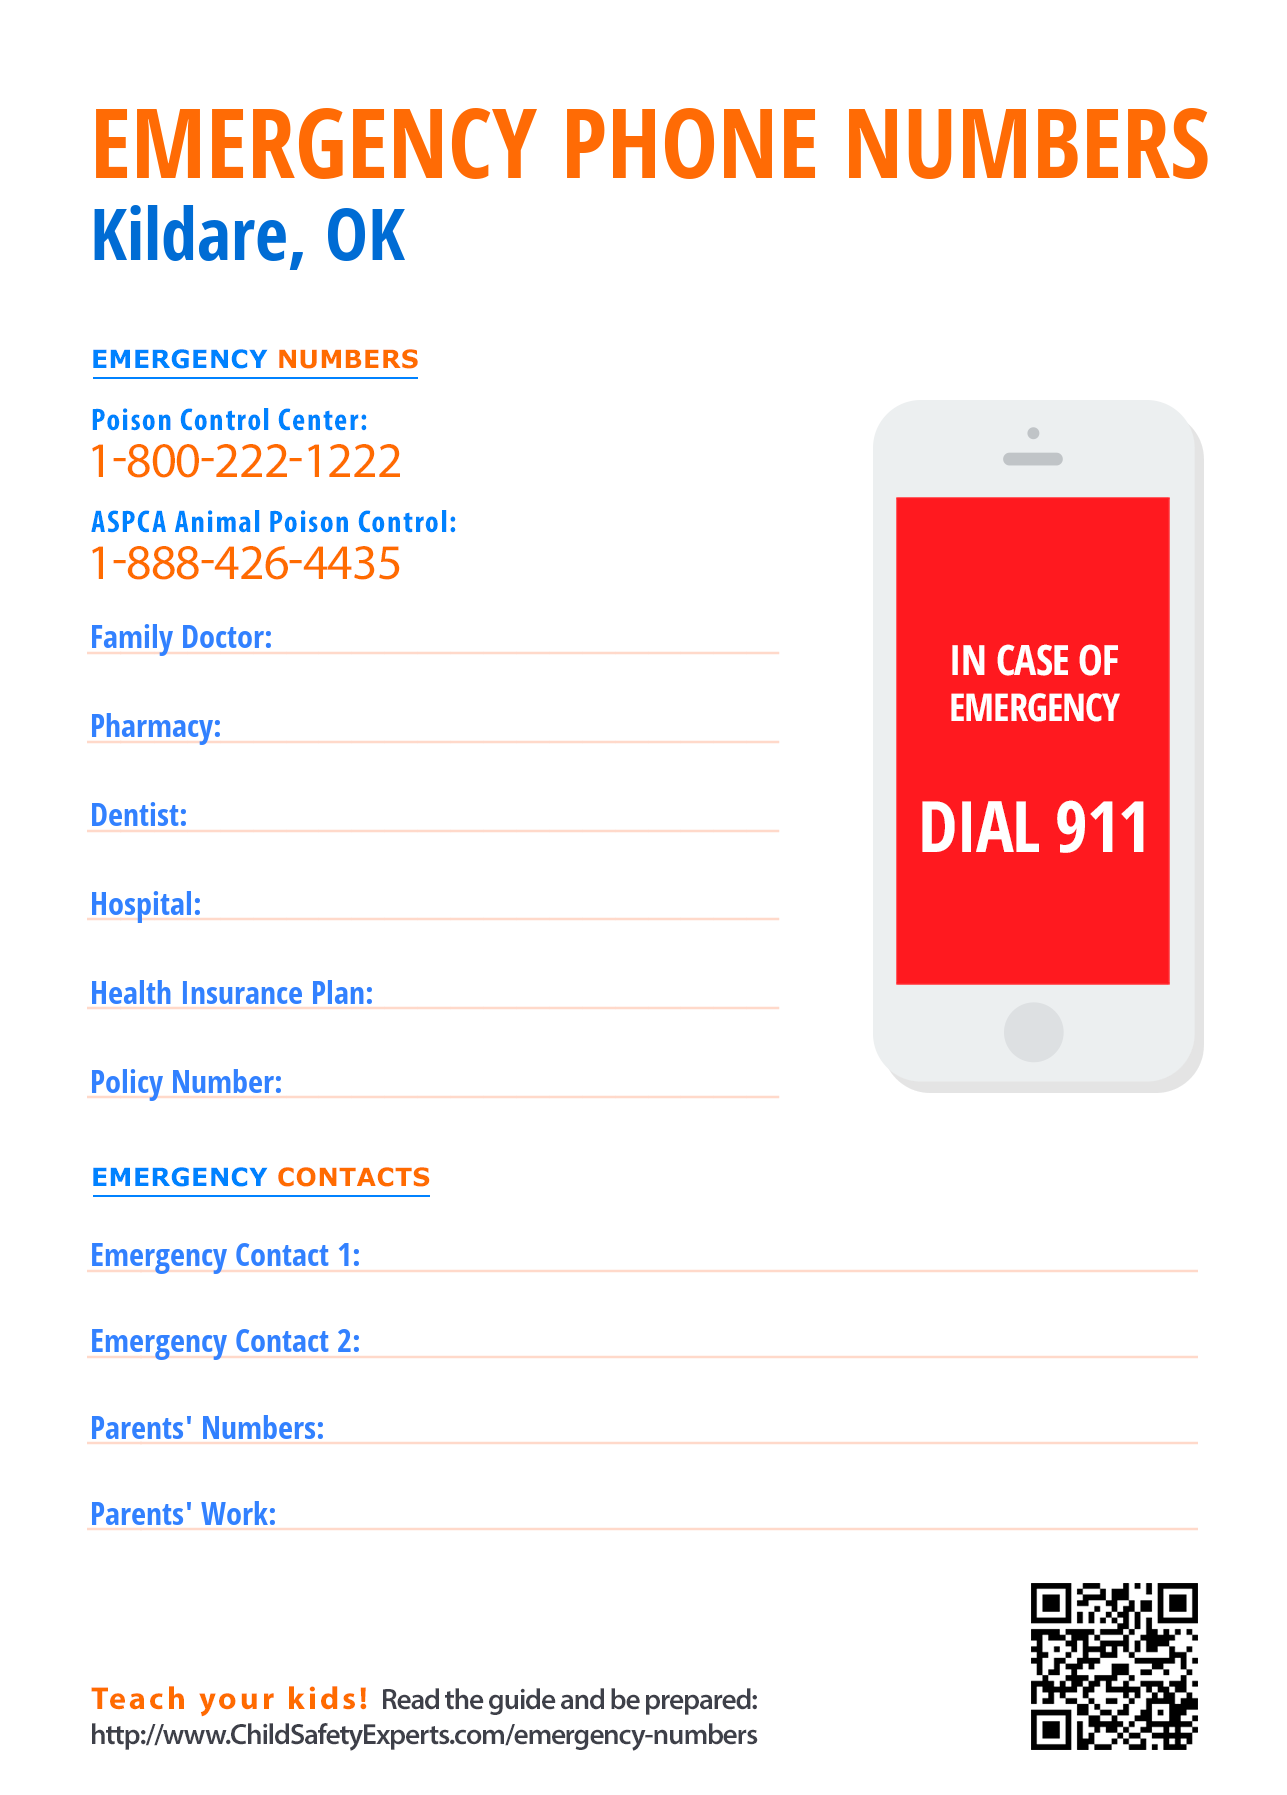 Important emergency phone numbers in Kildare, Oklahoma